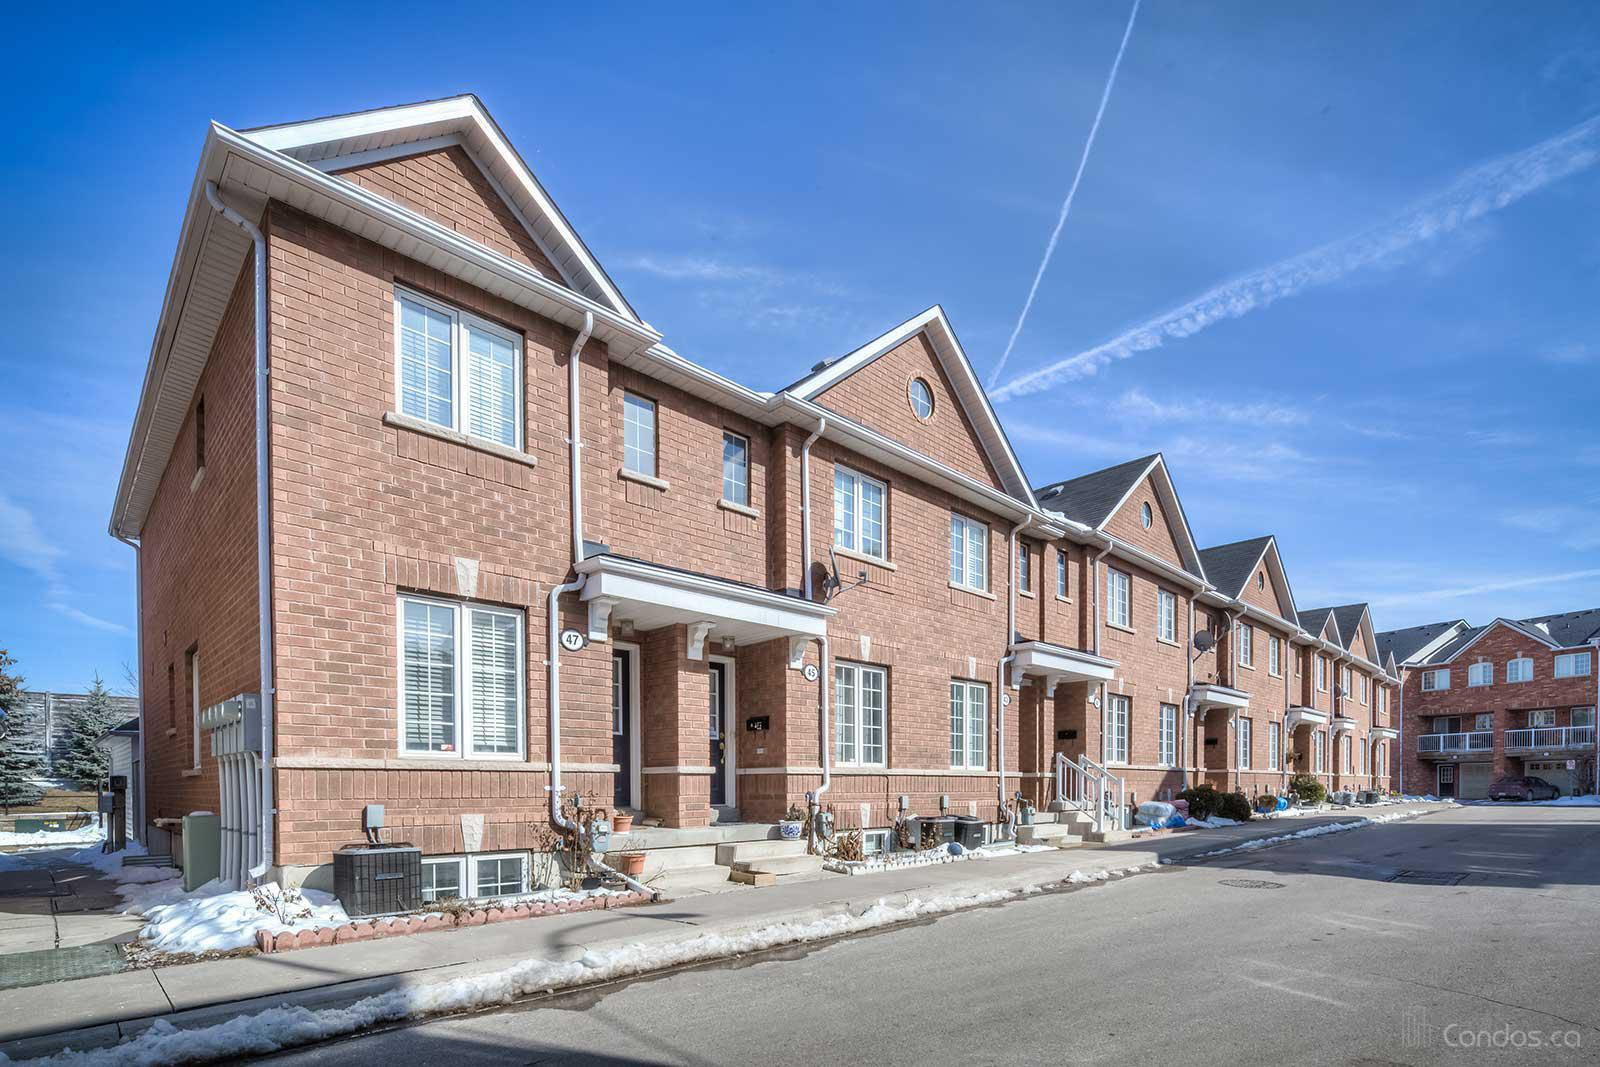 Townhomes of St. Clair Ⅱ at 47 Brickworks Lane, Toronto 0